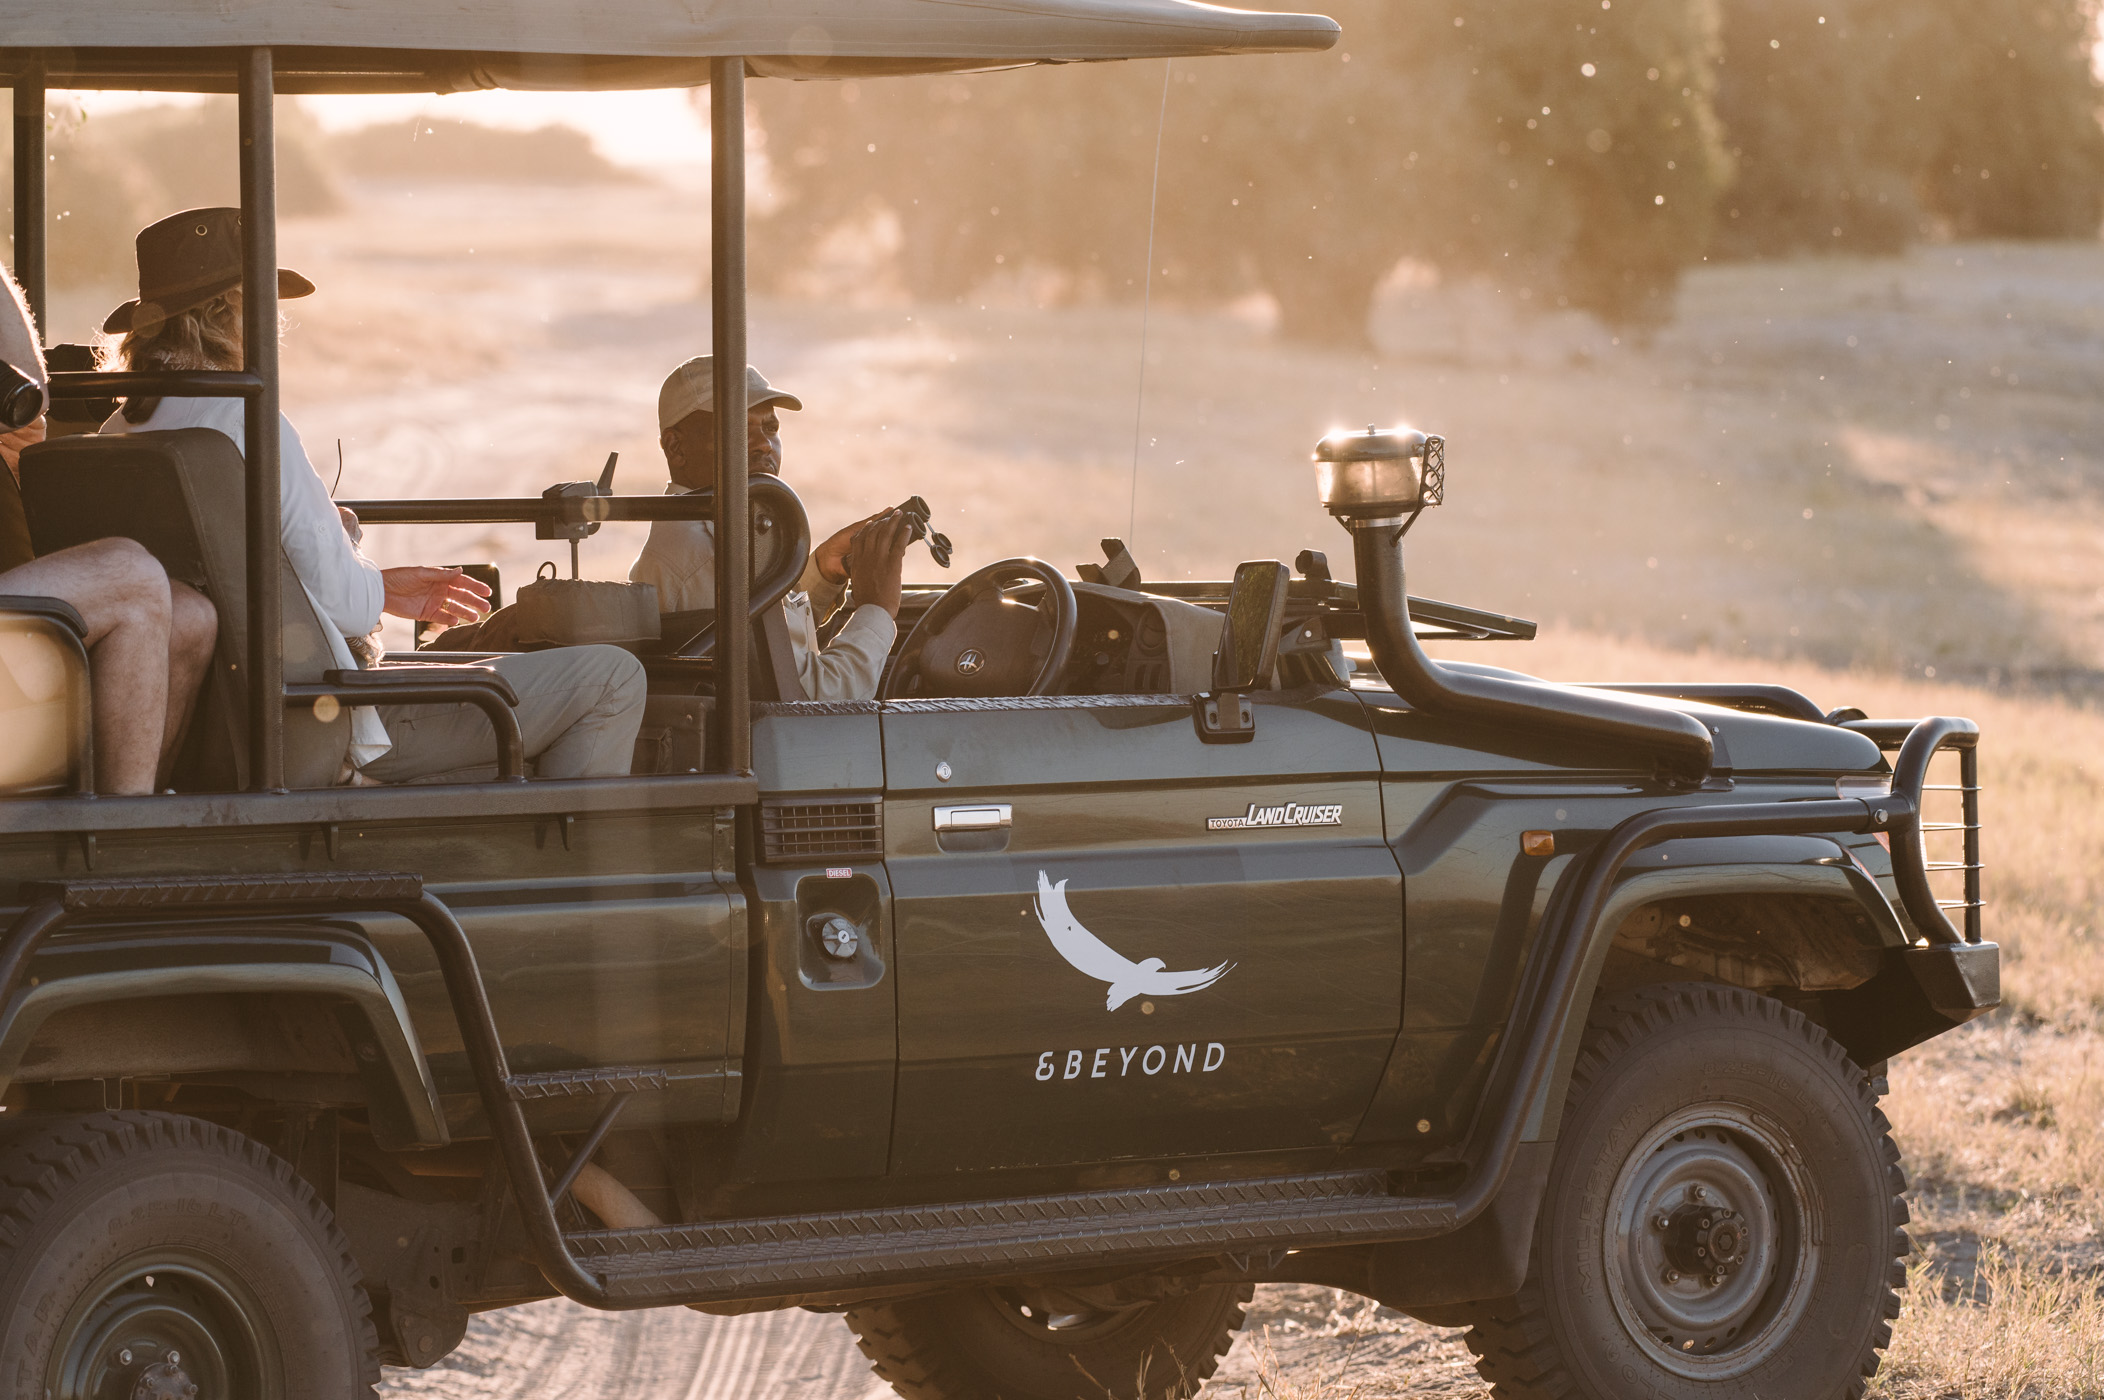 Safari vehicle in Chobe National Park